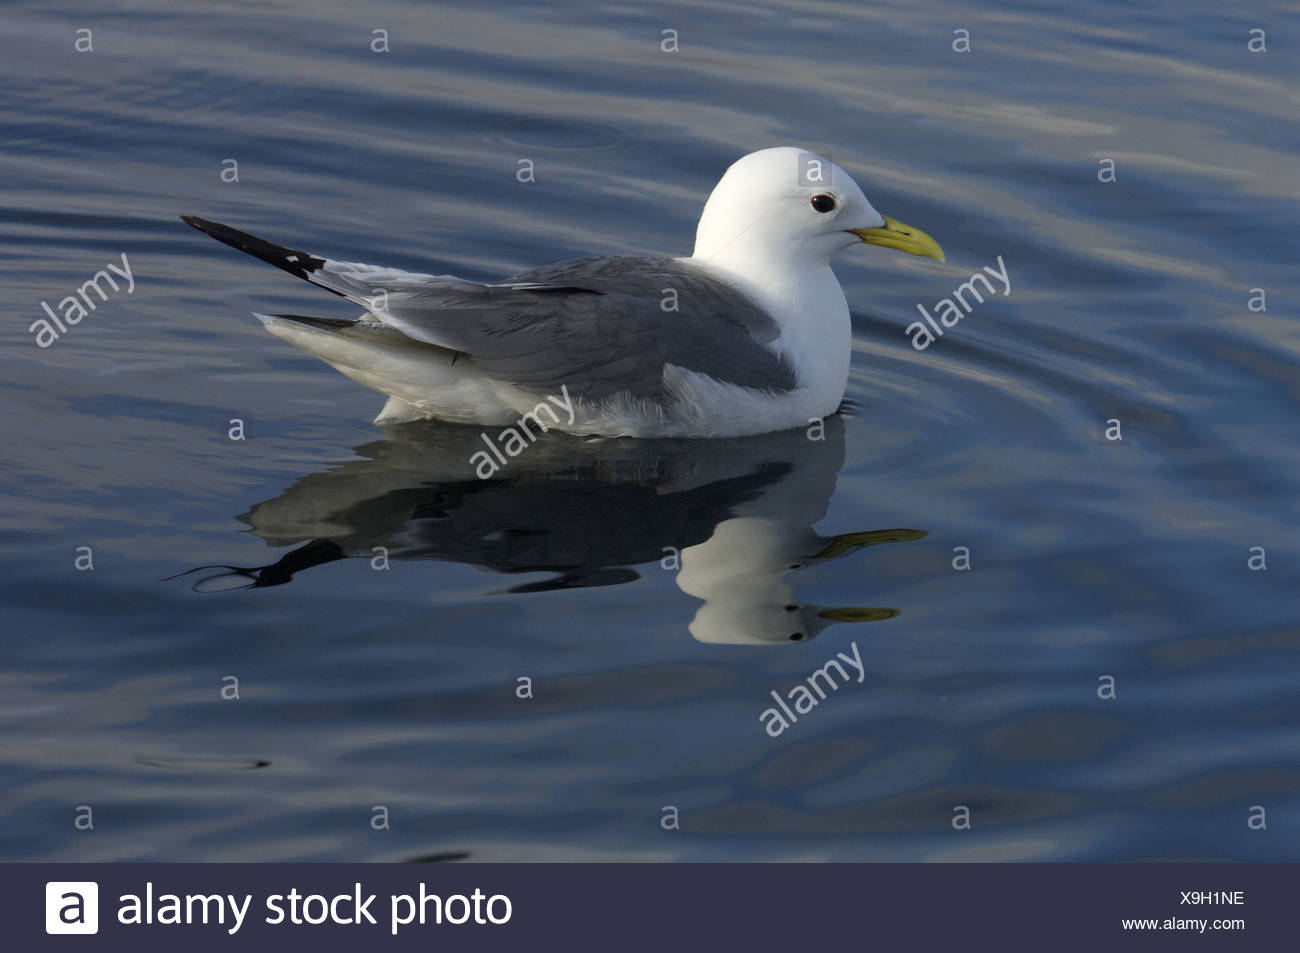 Kittiwake (Rissa tridactyla) adult, summer plumage, swimming, Flatanger, Nord-Trondelag, Norway - Stock Image